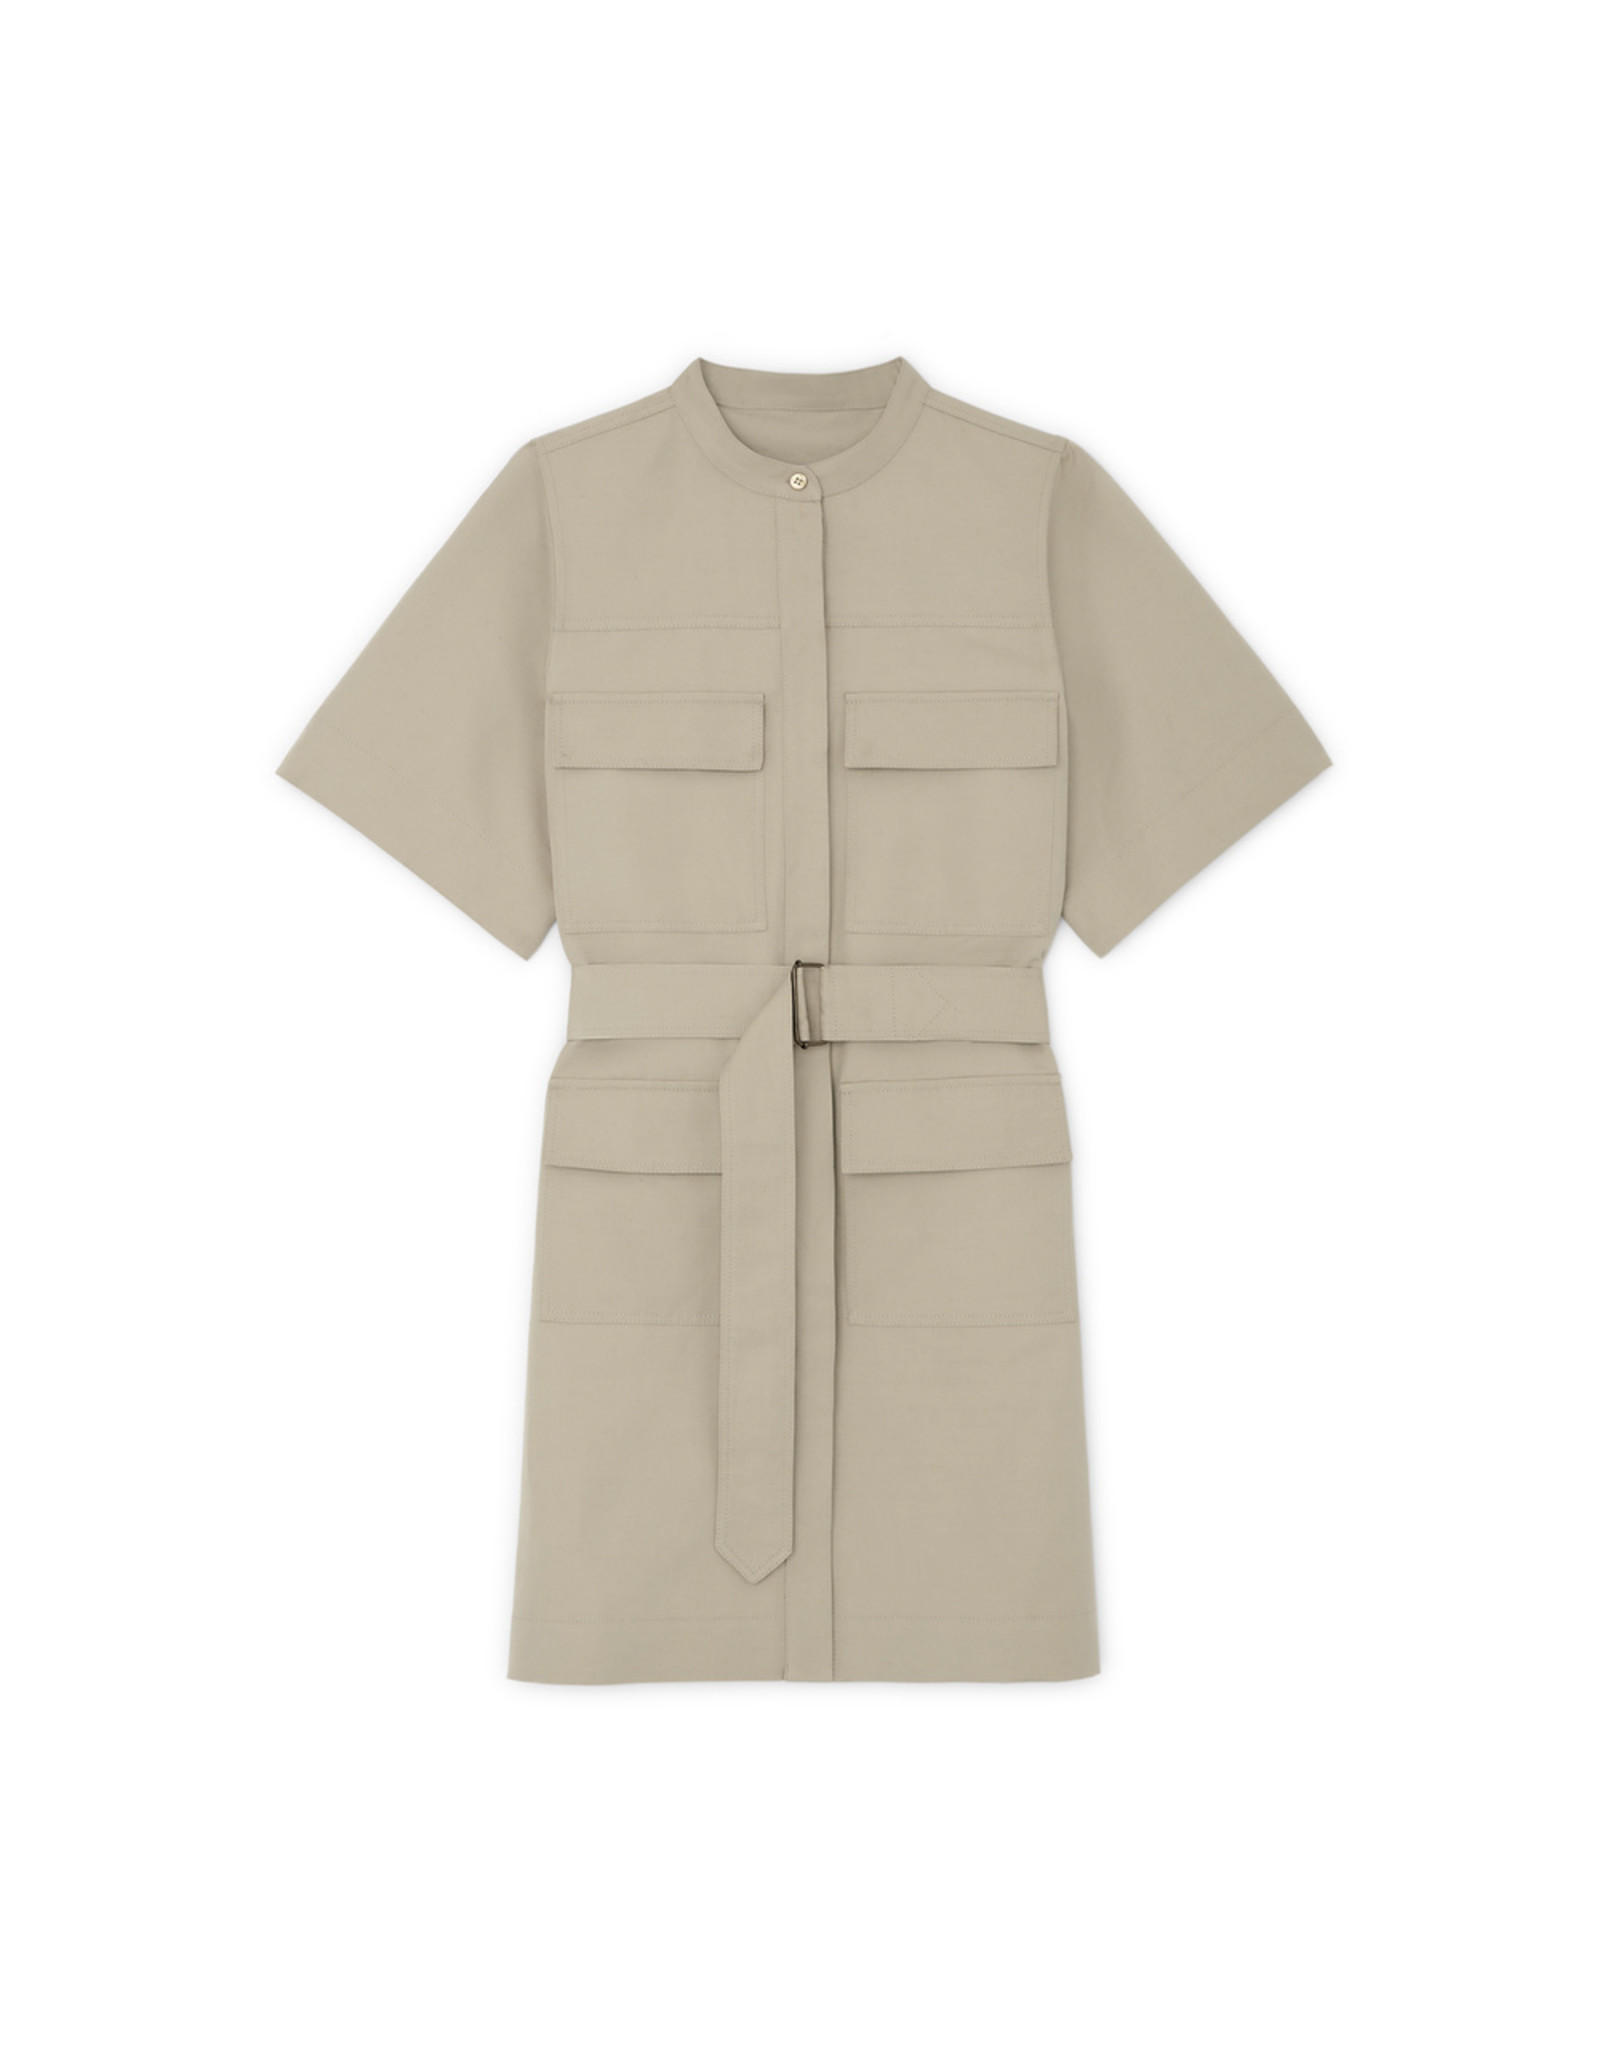 G. Label G. Label Umbria Utility Shirtdress (Color: Khaki, Size: XS)